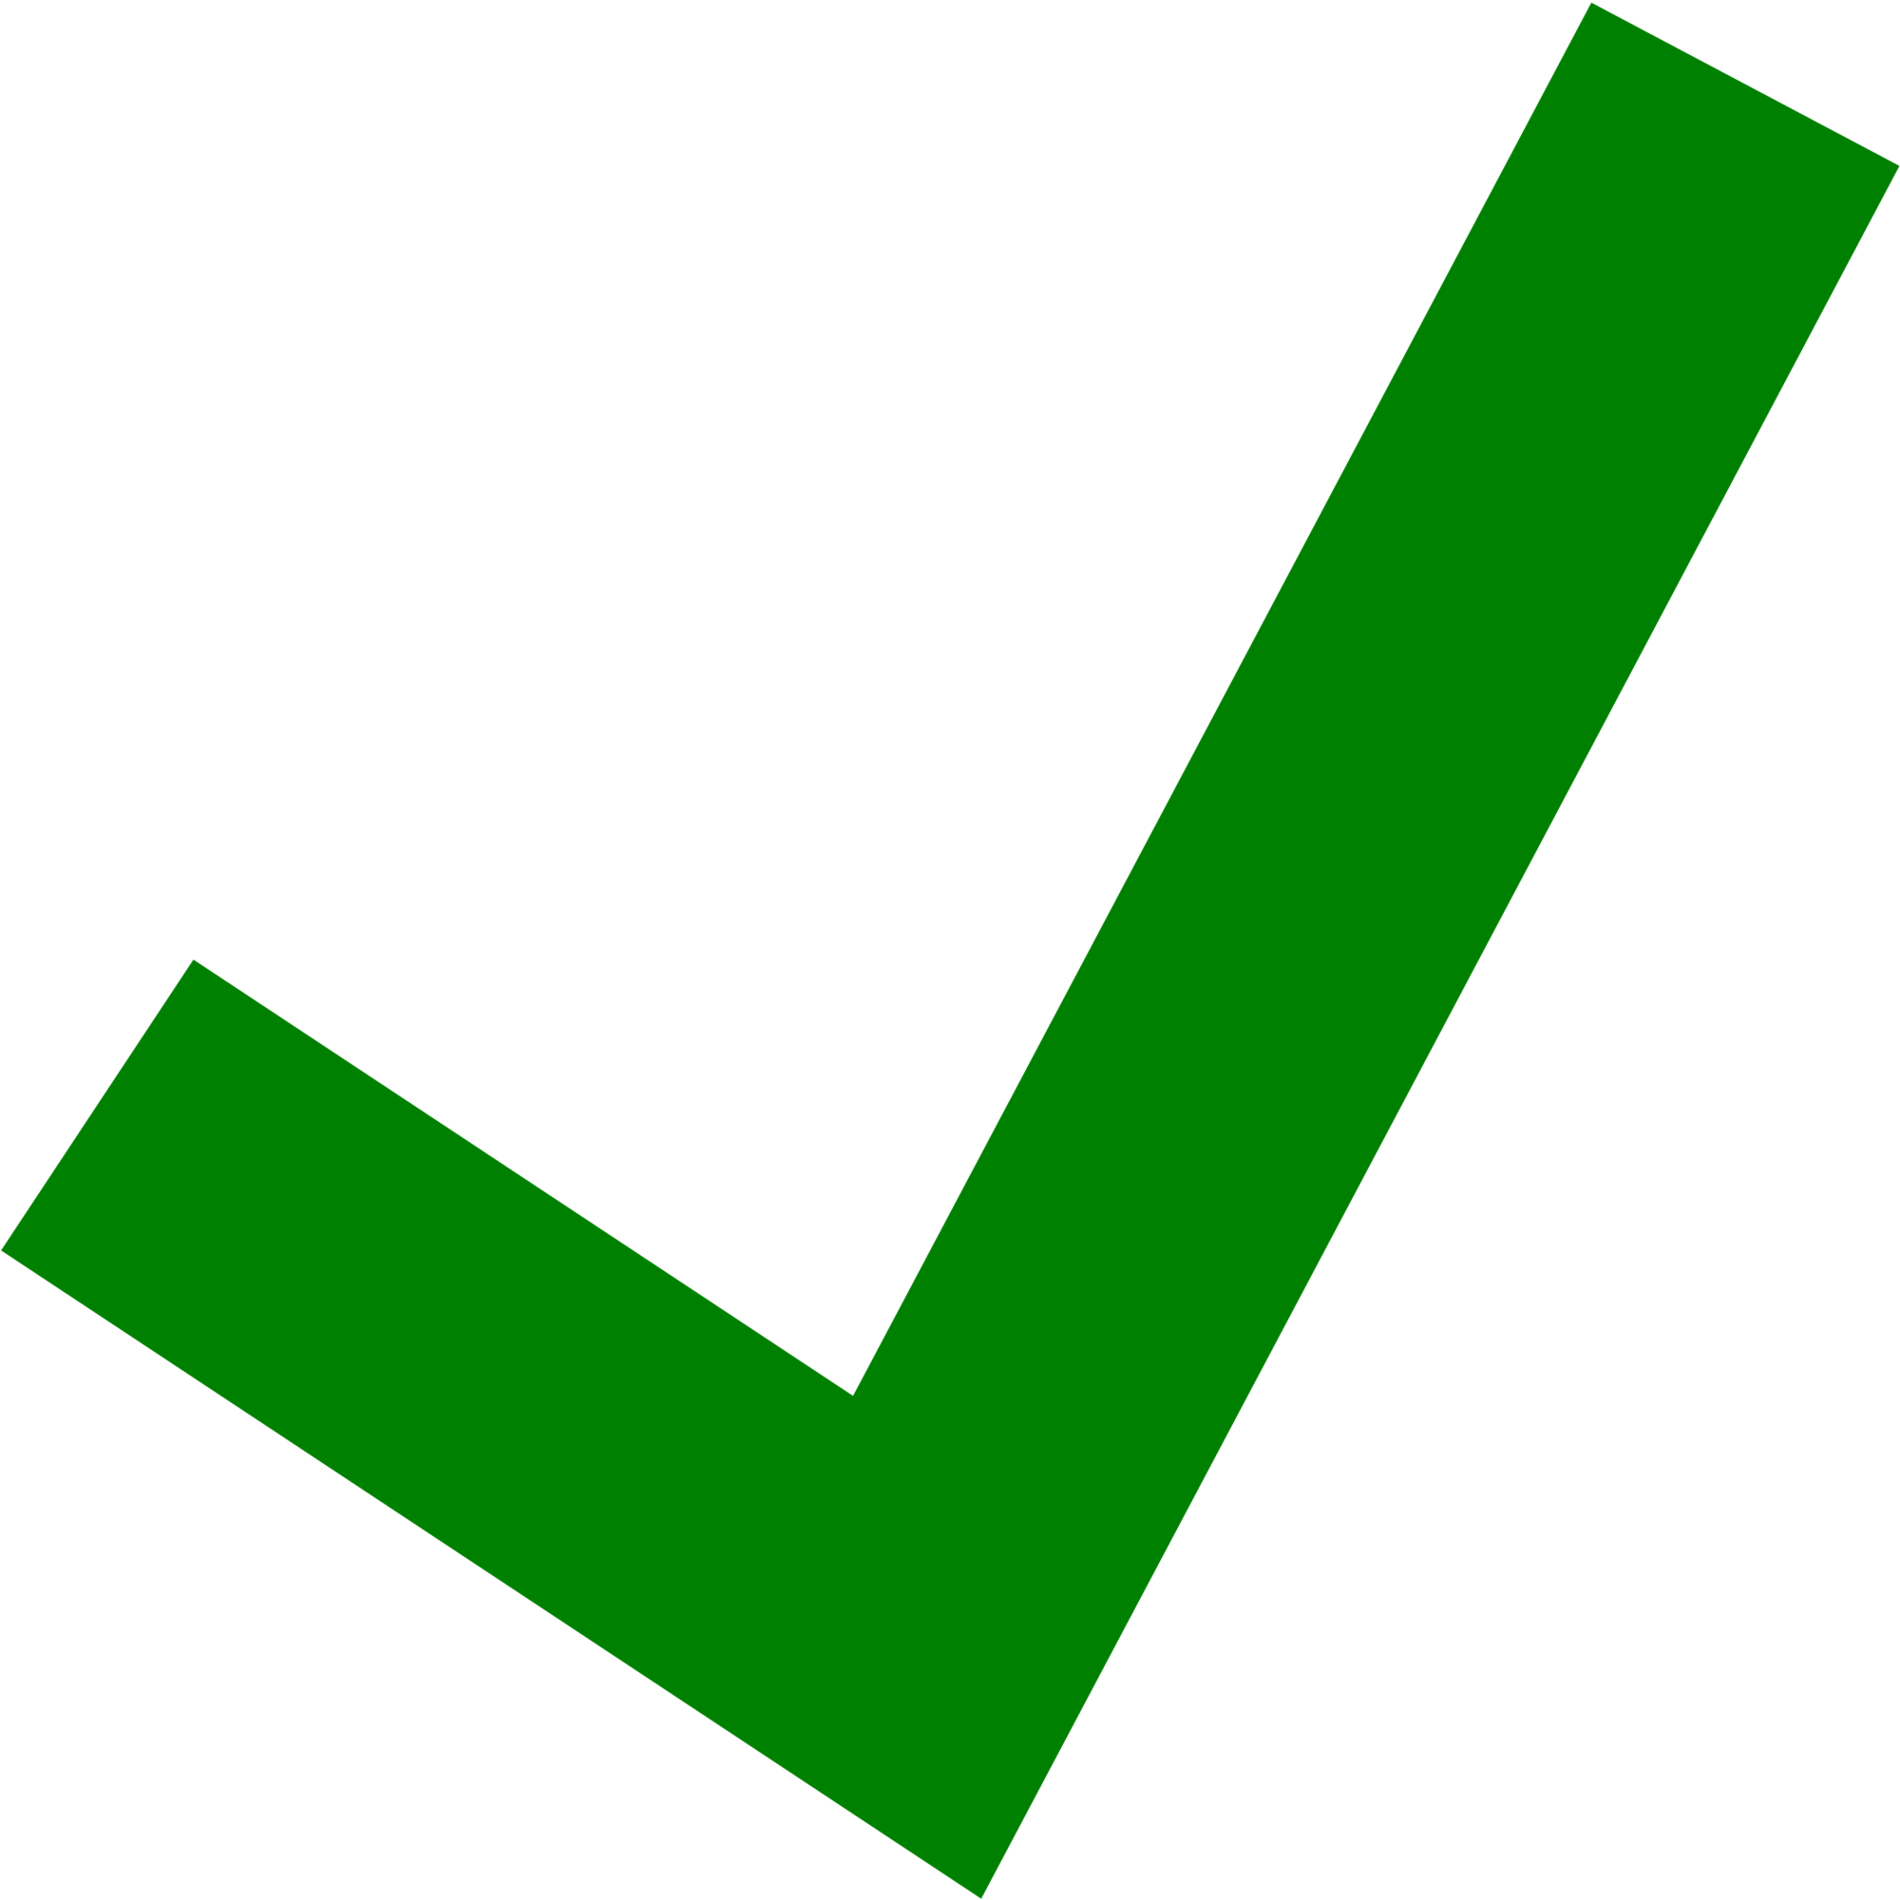 Check Mark Transparent Background | Free download best Check